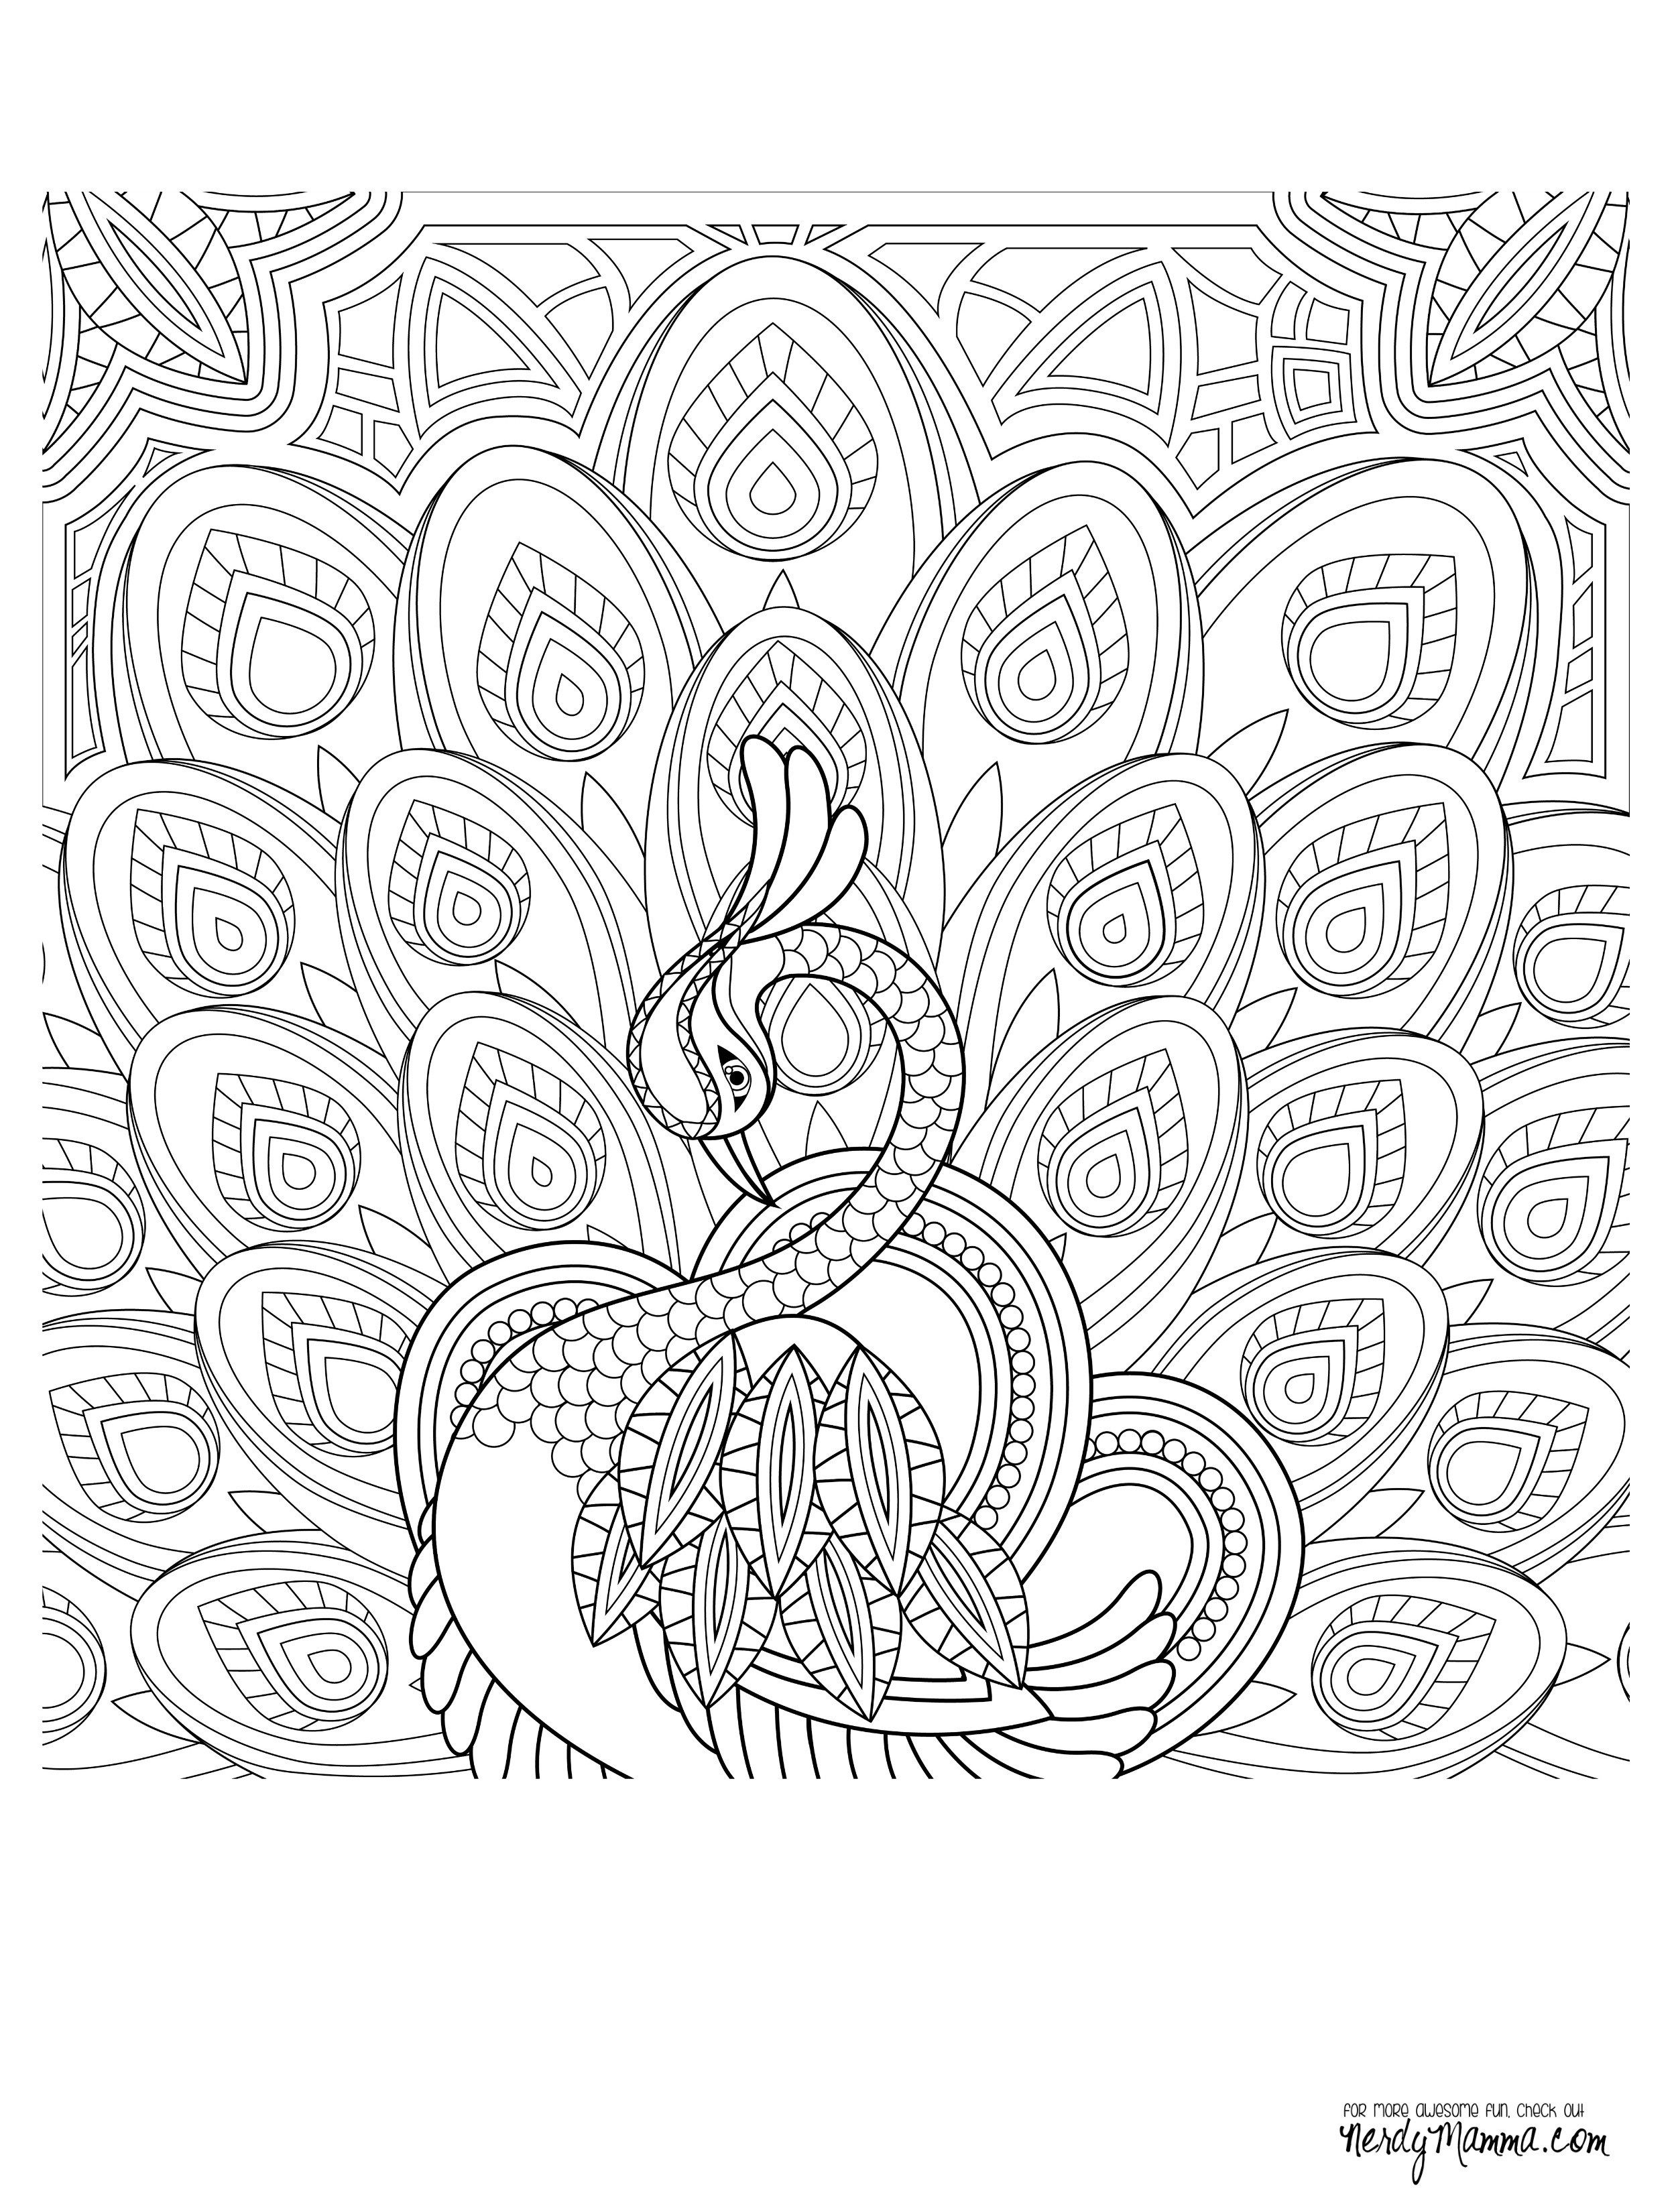 peacock feather coloring pages colouring adult detailed advanced printable kleuren voor volwassenen coloriage pour adulte anti - Peacock Coloring Pages